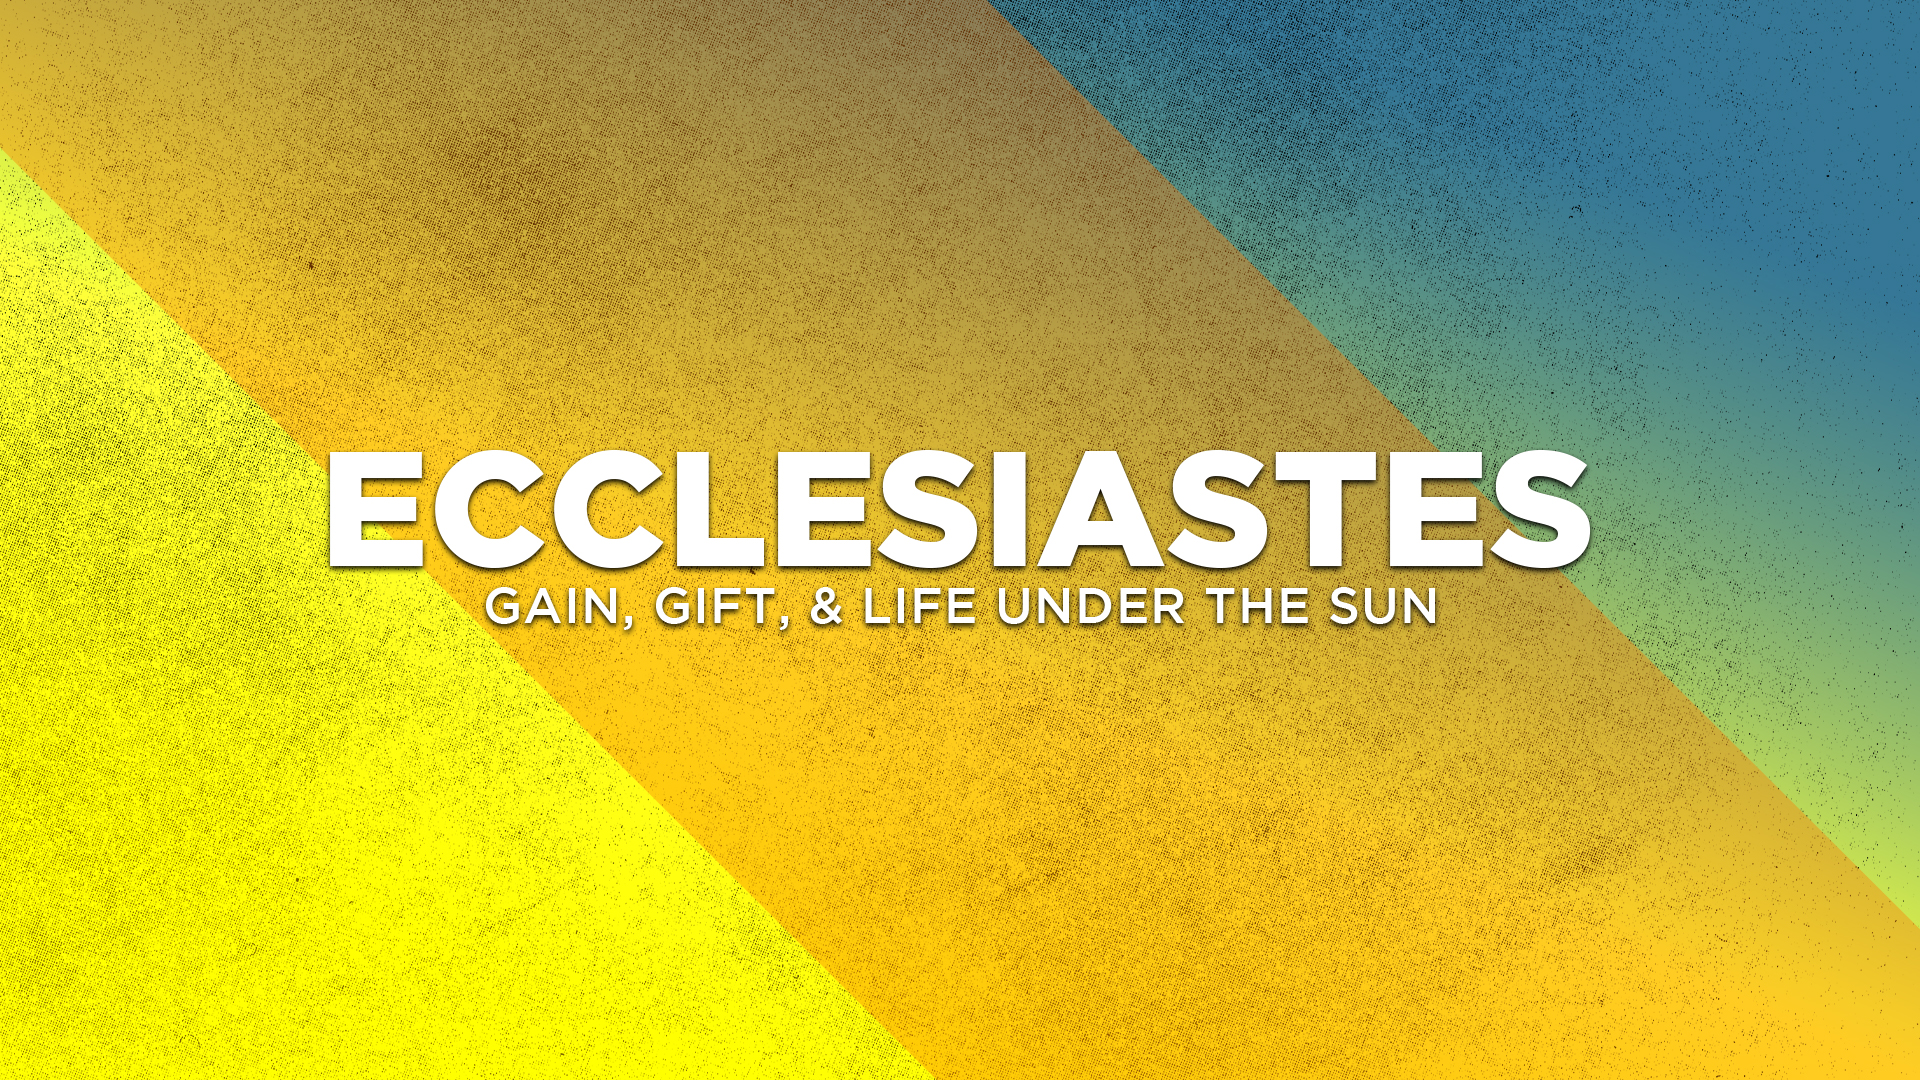 Ecclesiastes: Gain, Gift, and Life Under the Sun